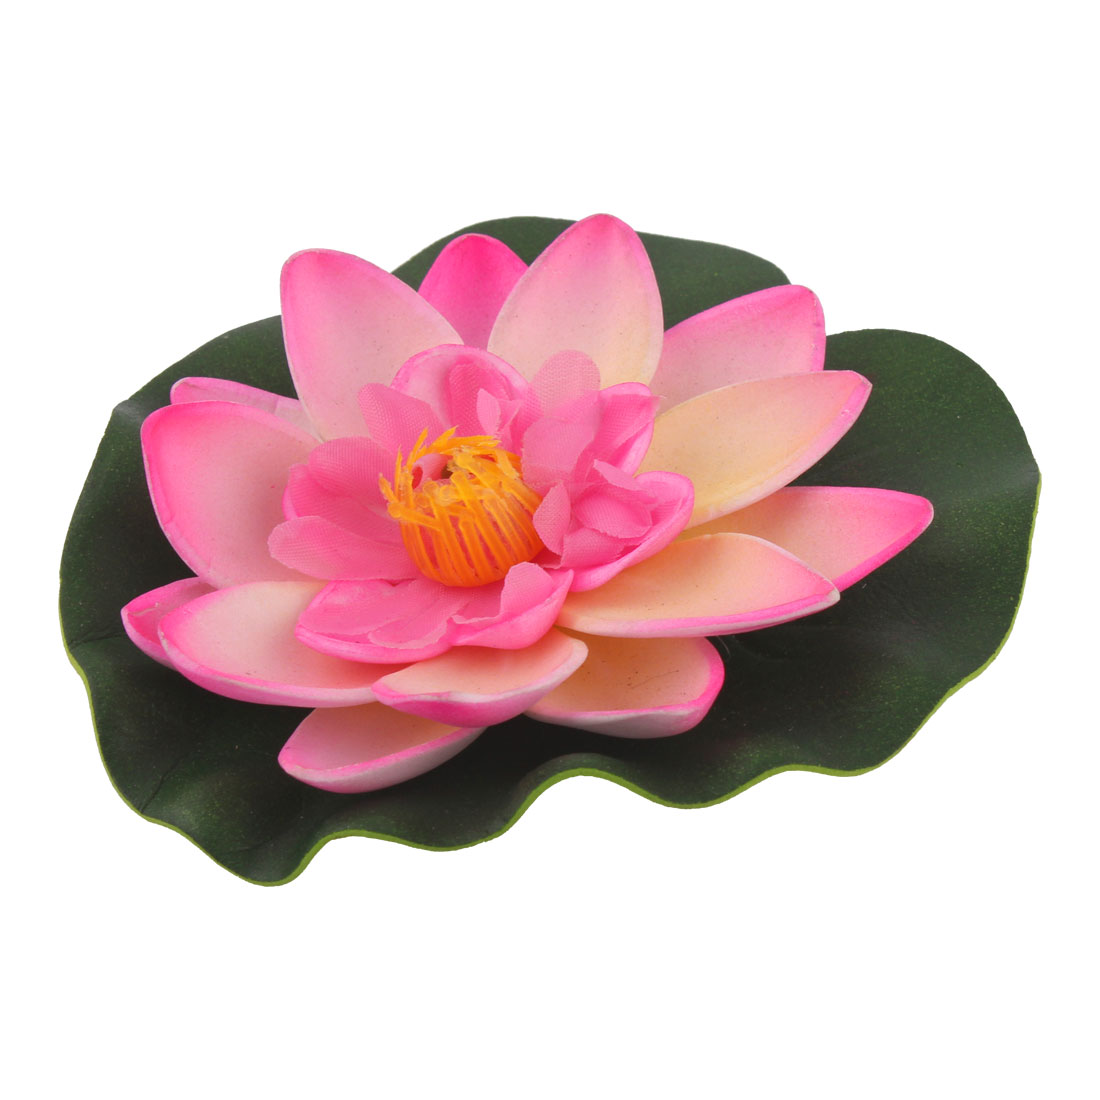 Aquarium Fish Tank Pond Artificial Floating Lotus Flower Decor Ornament Pink